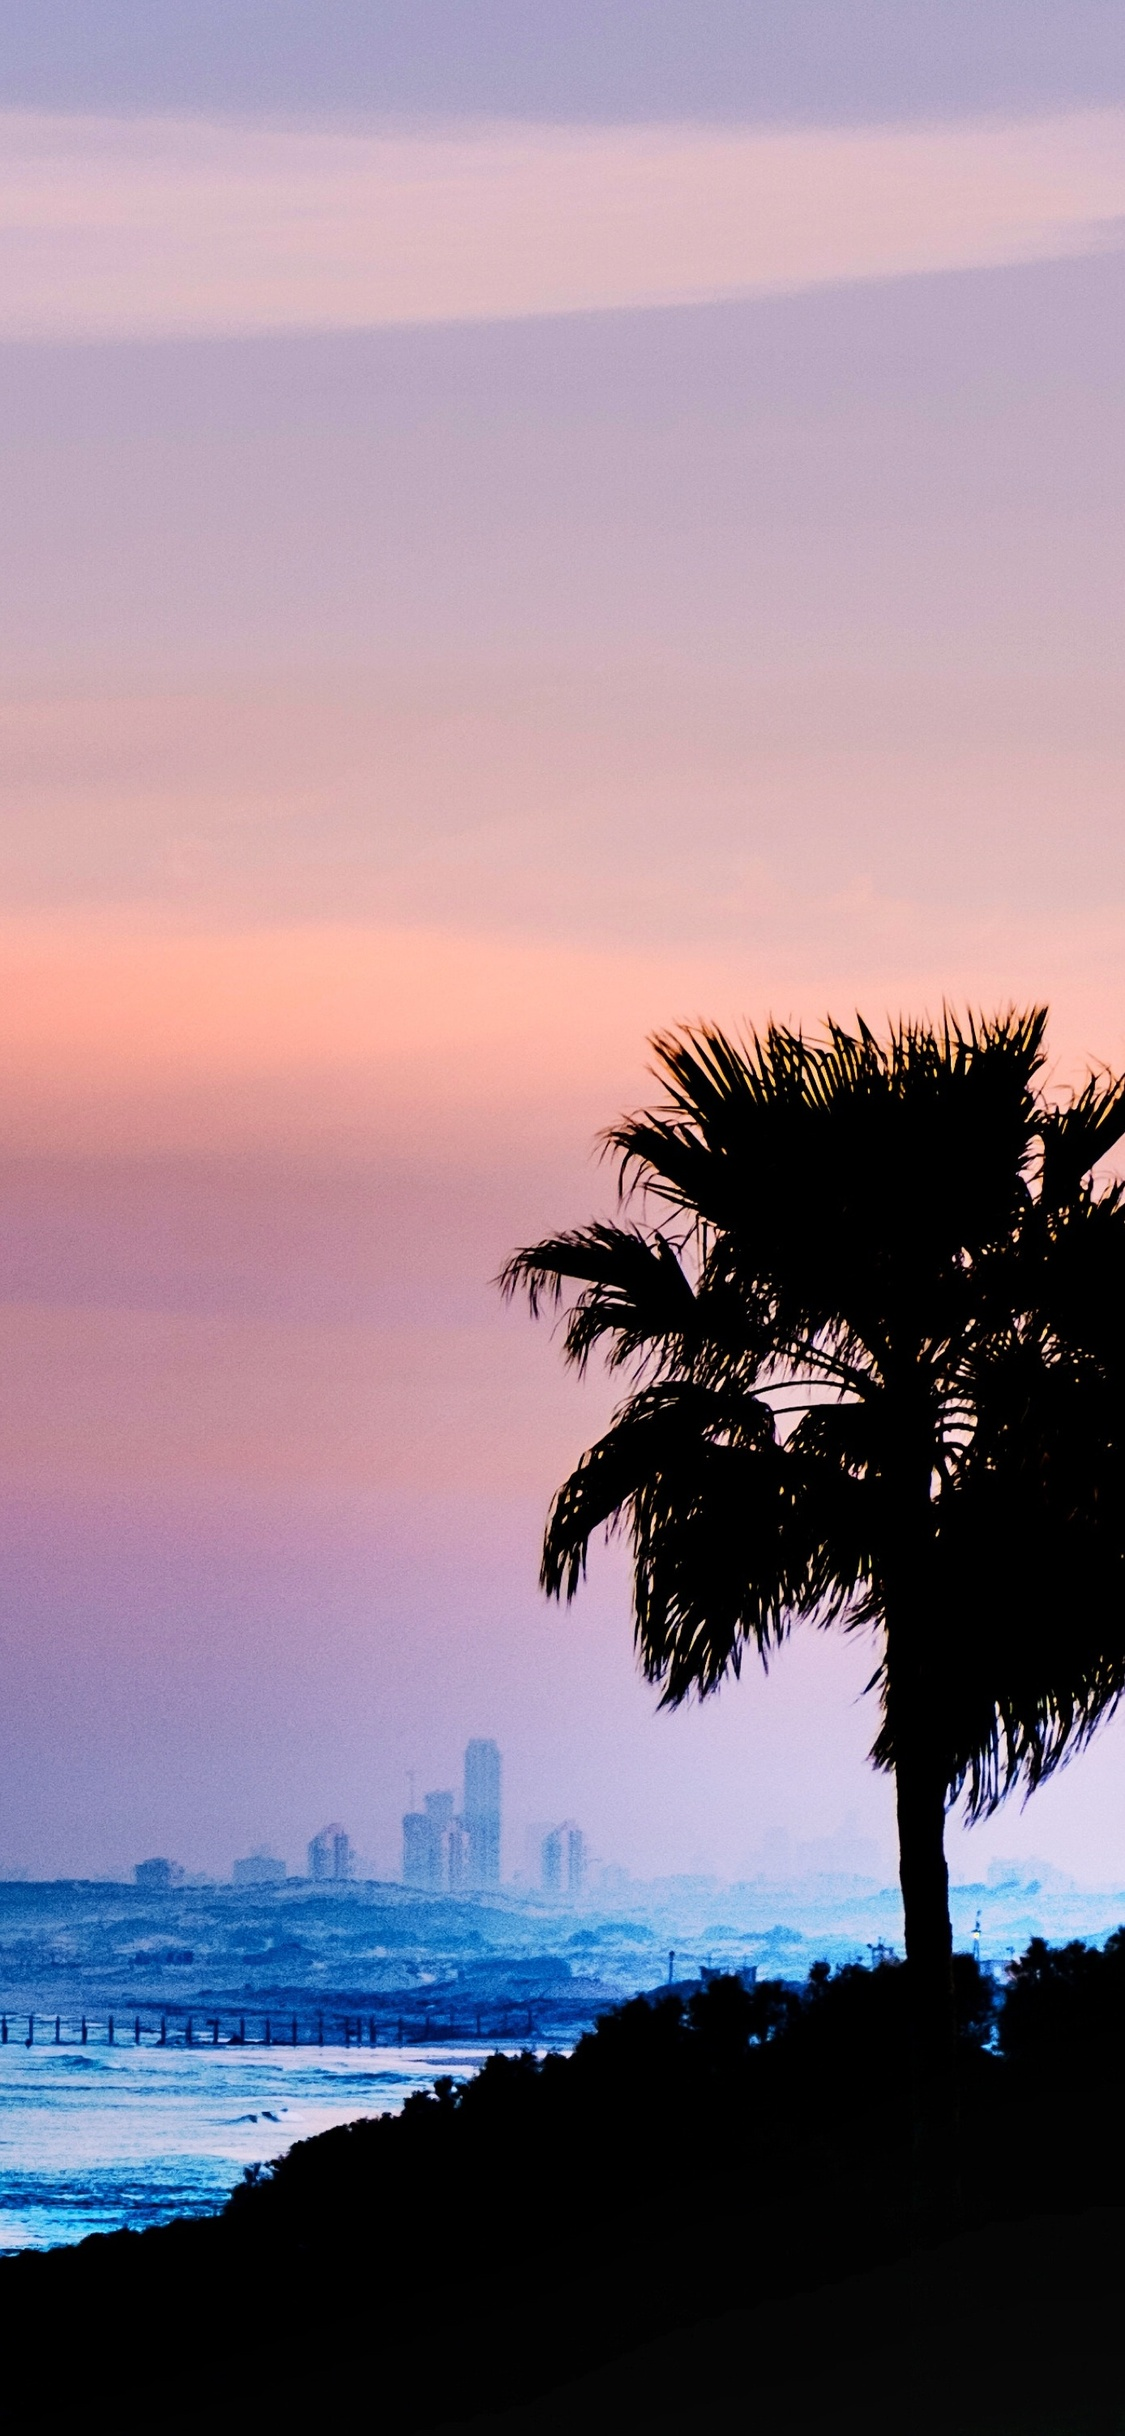 1125x2436 Palm Tree Outdoors 4k Iphone Xs Iphone 10 Iphone X